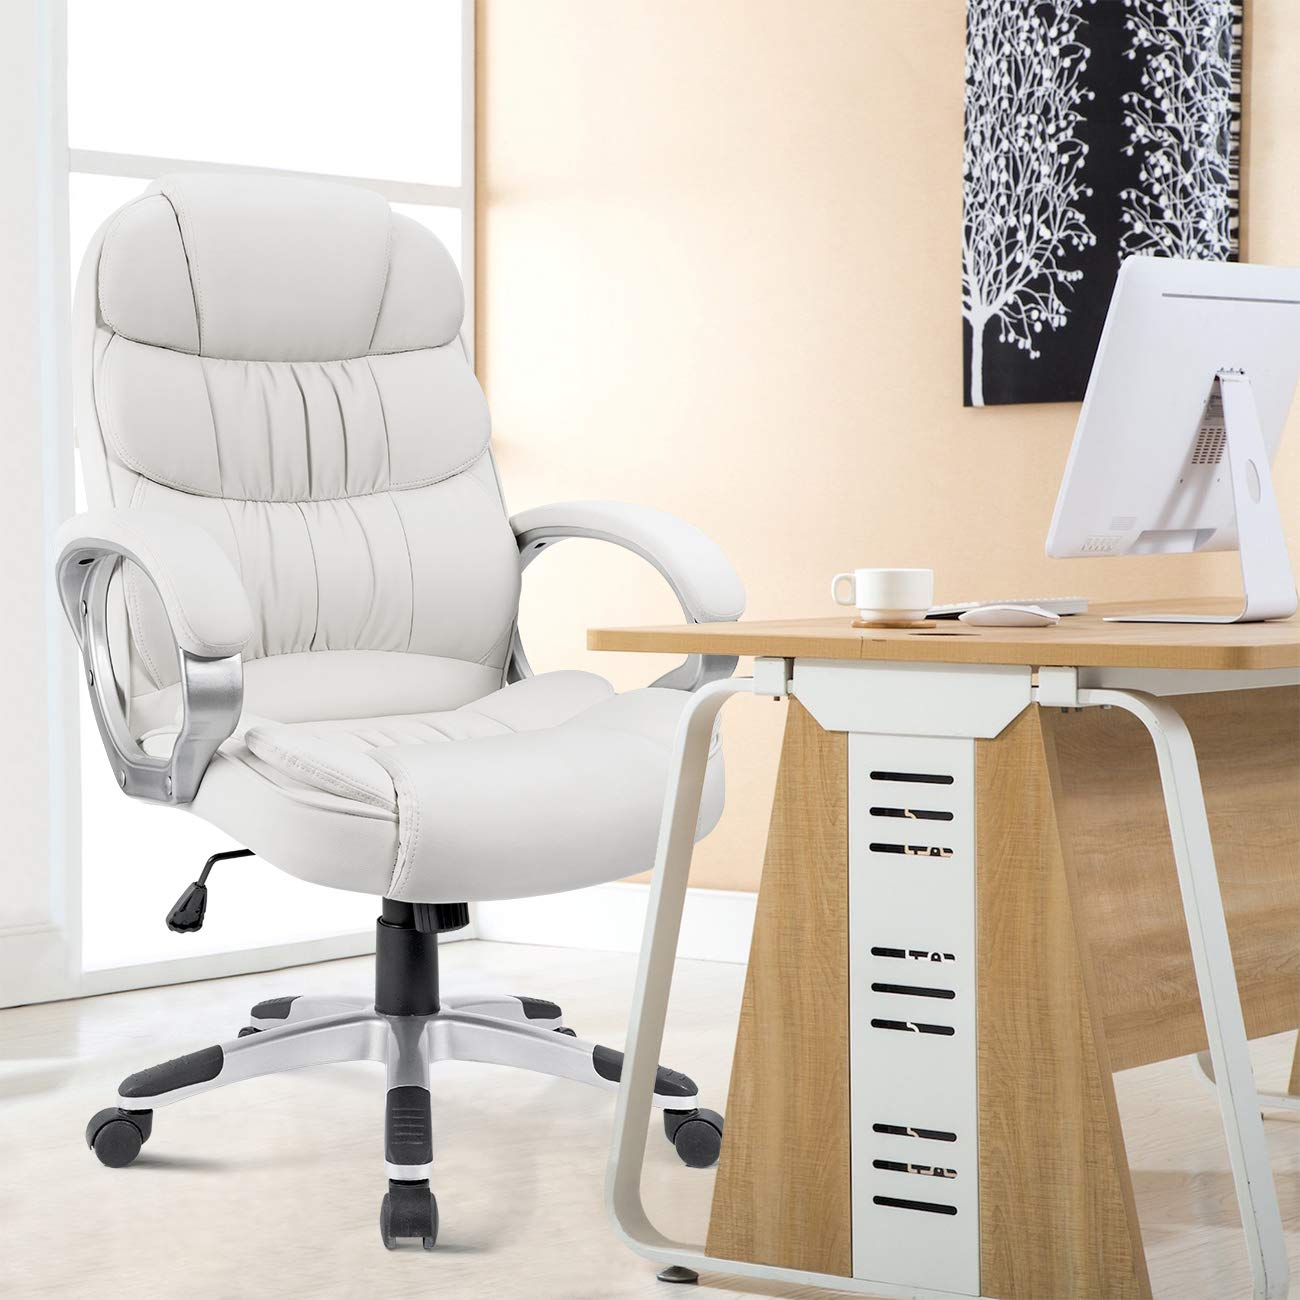 Homall Office Chair High Back Computer Desk Chair, PU Leather Adjustable Chair Ergonomic Boss Executive Management Swivel Task Chair with Padded Armrests (White) by Homall (Image #2)